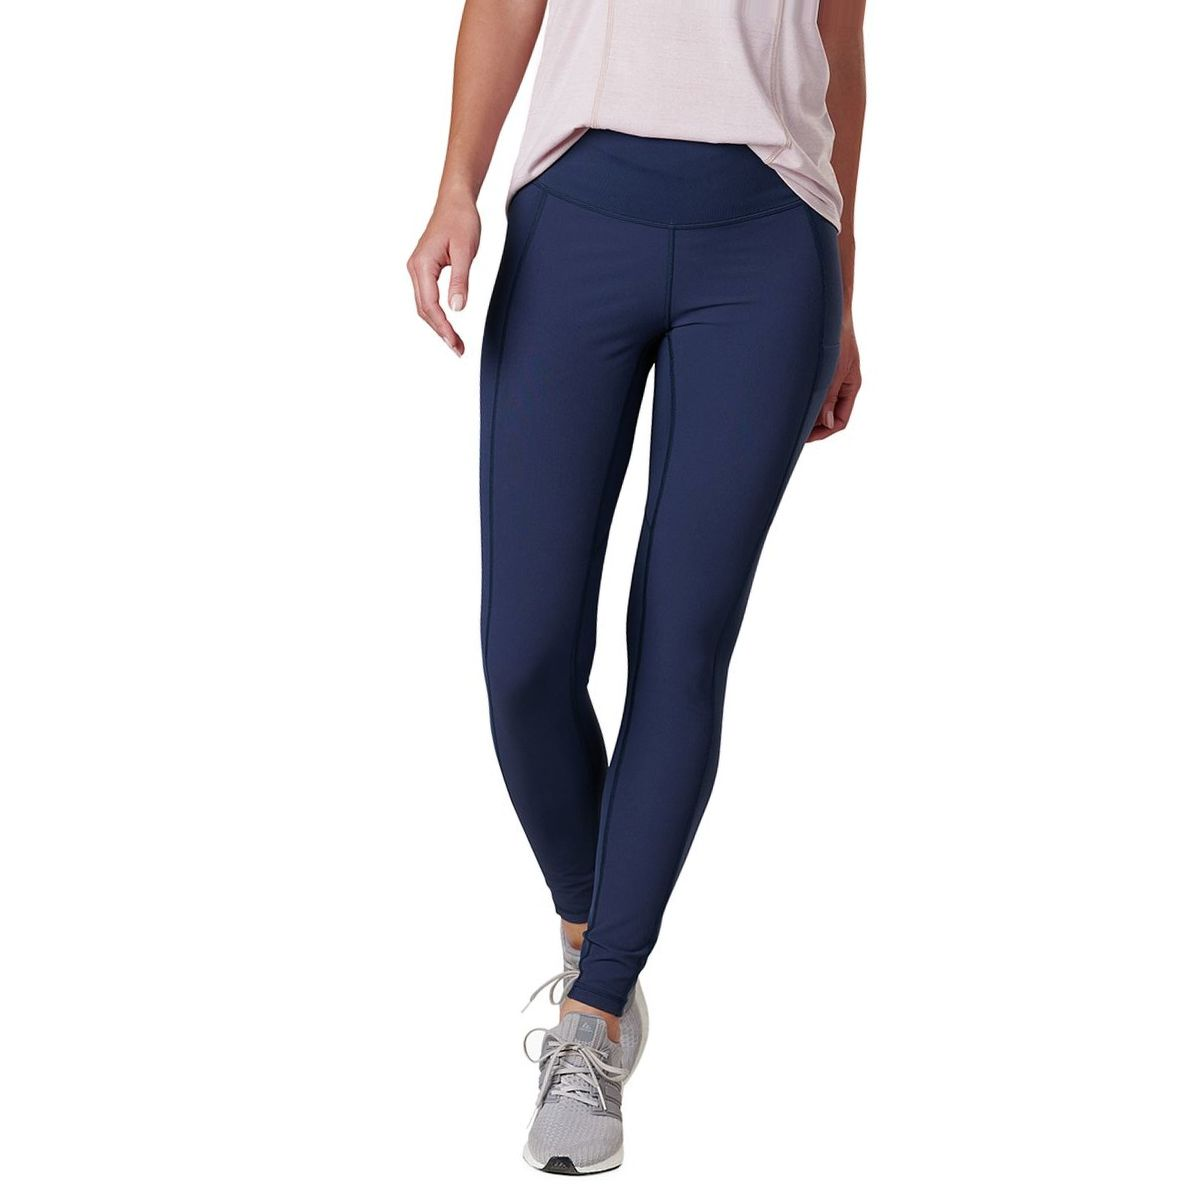 KUHL Travrse Legging - Women's